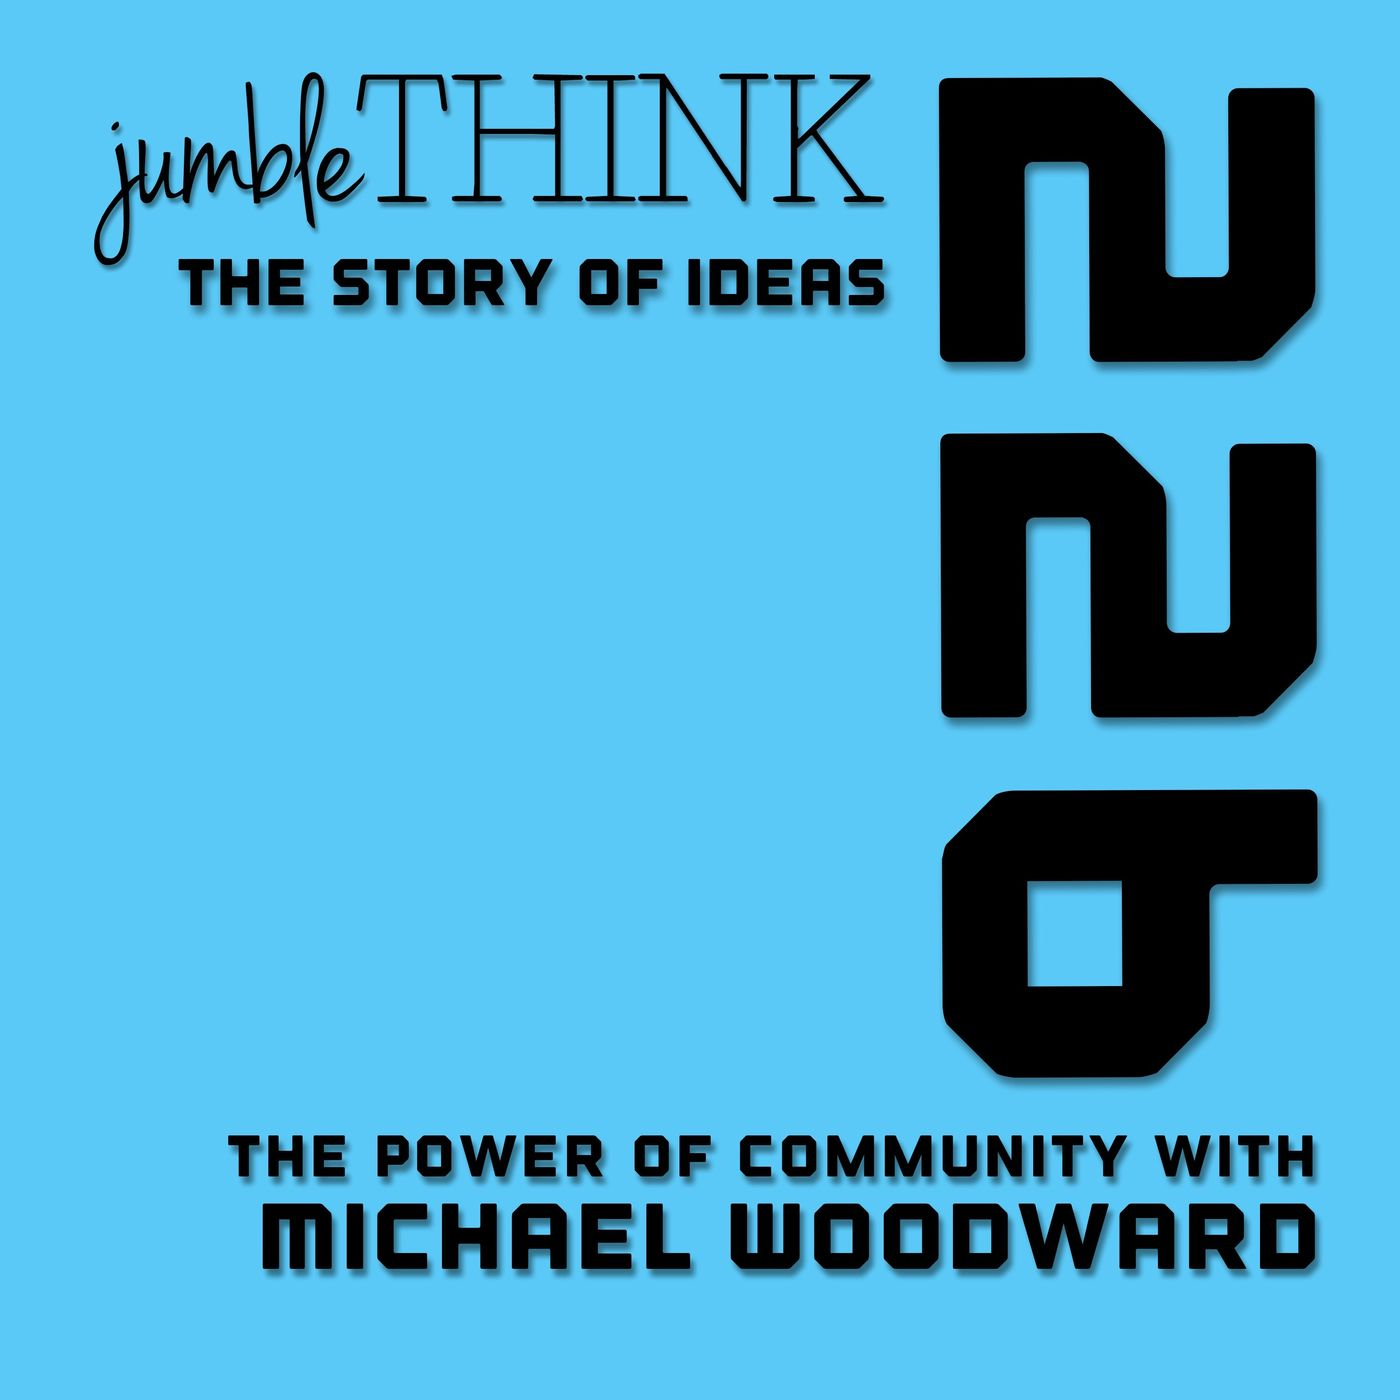 The Power of Community with Michael Woodward